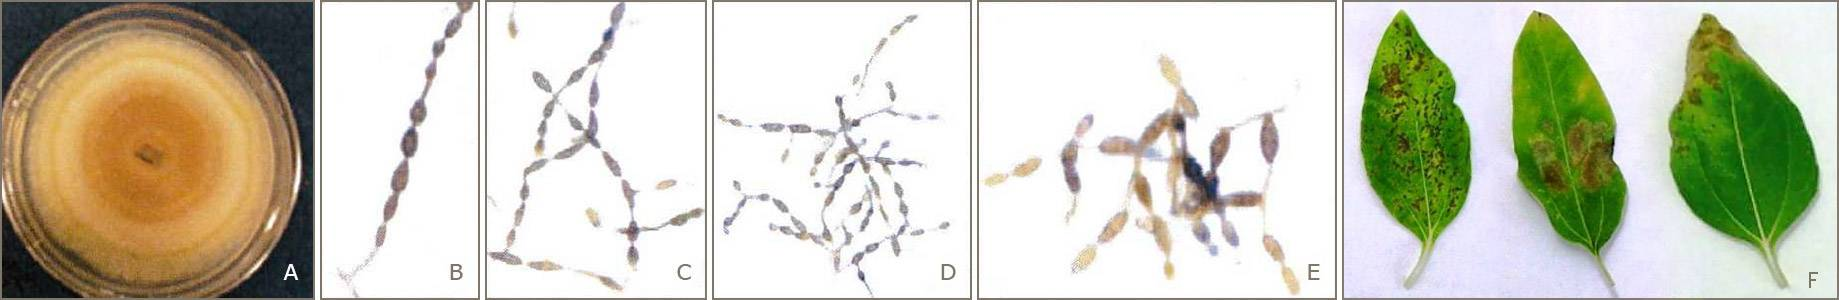 Sporulation structures and leaf blight lesions of Alternaria species on sunflower